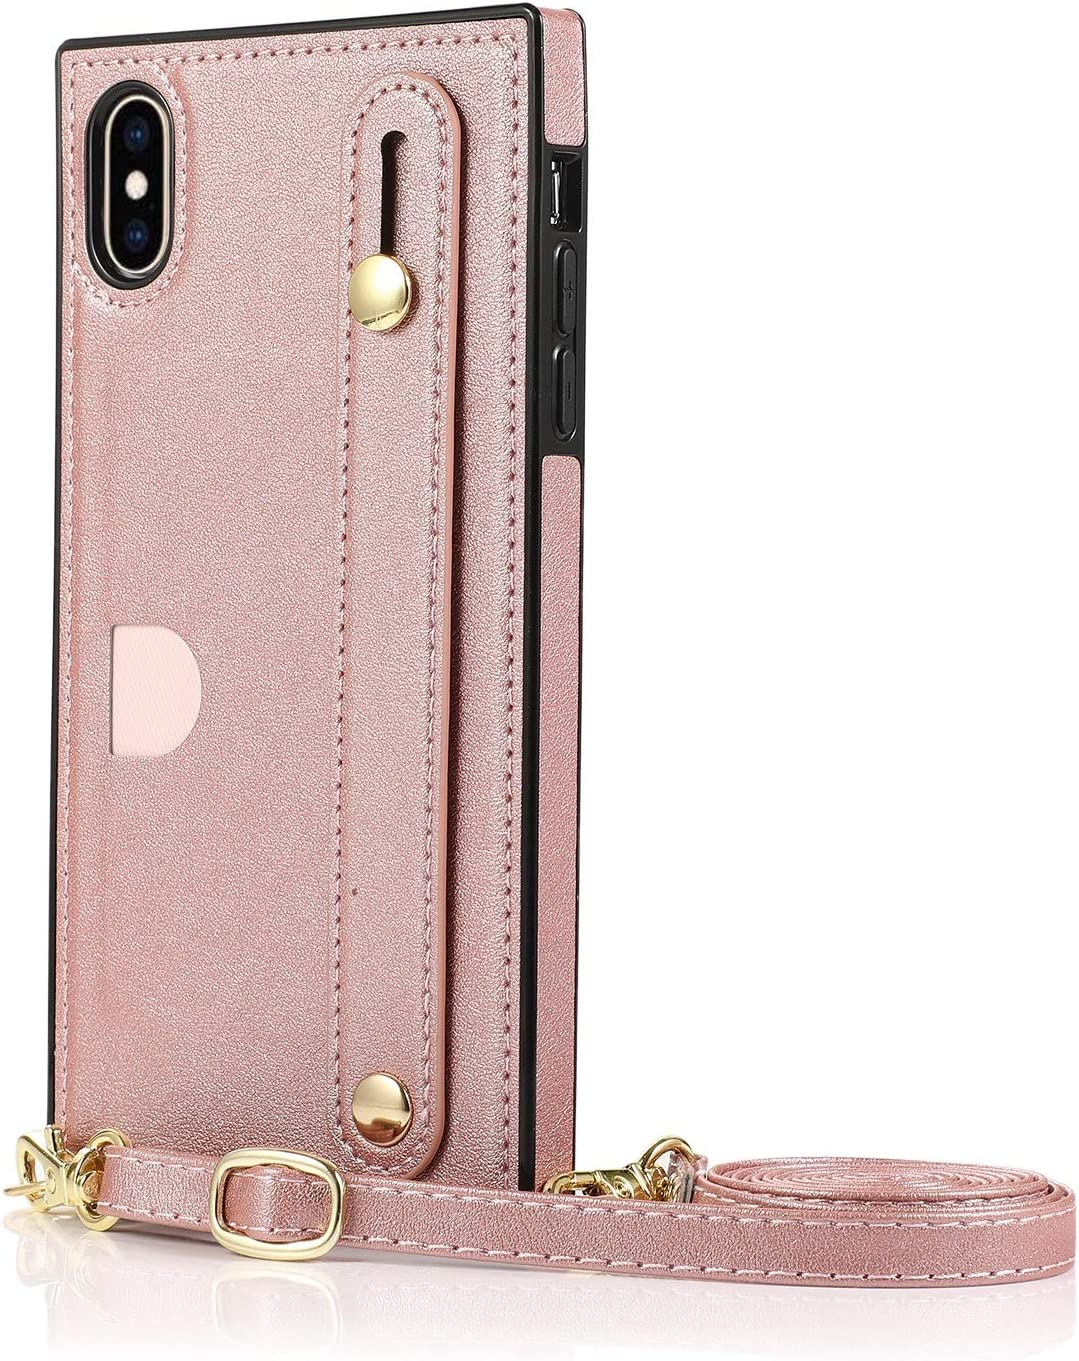 SLDiann Case for iPhone Xs max, Leather Case with Credit Card Slot Non-Slip Buckle Holder/Crossbody Long Lanyard, Shockproof Leather TPU Case Cover for iPhone Xs max (Color : Rosegold)